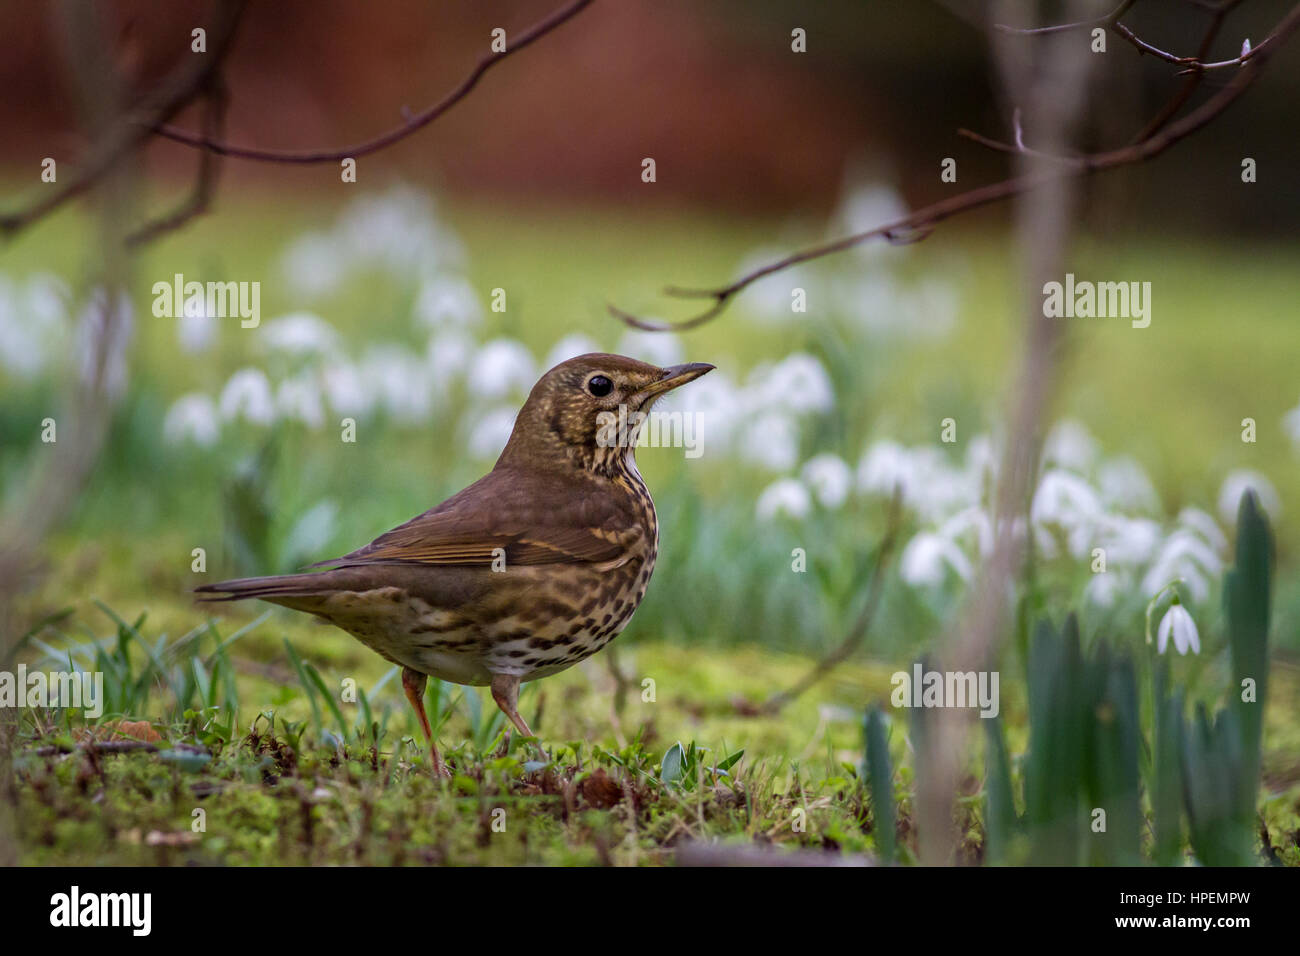 Song thrush in snowdrops, UK - Stock Image